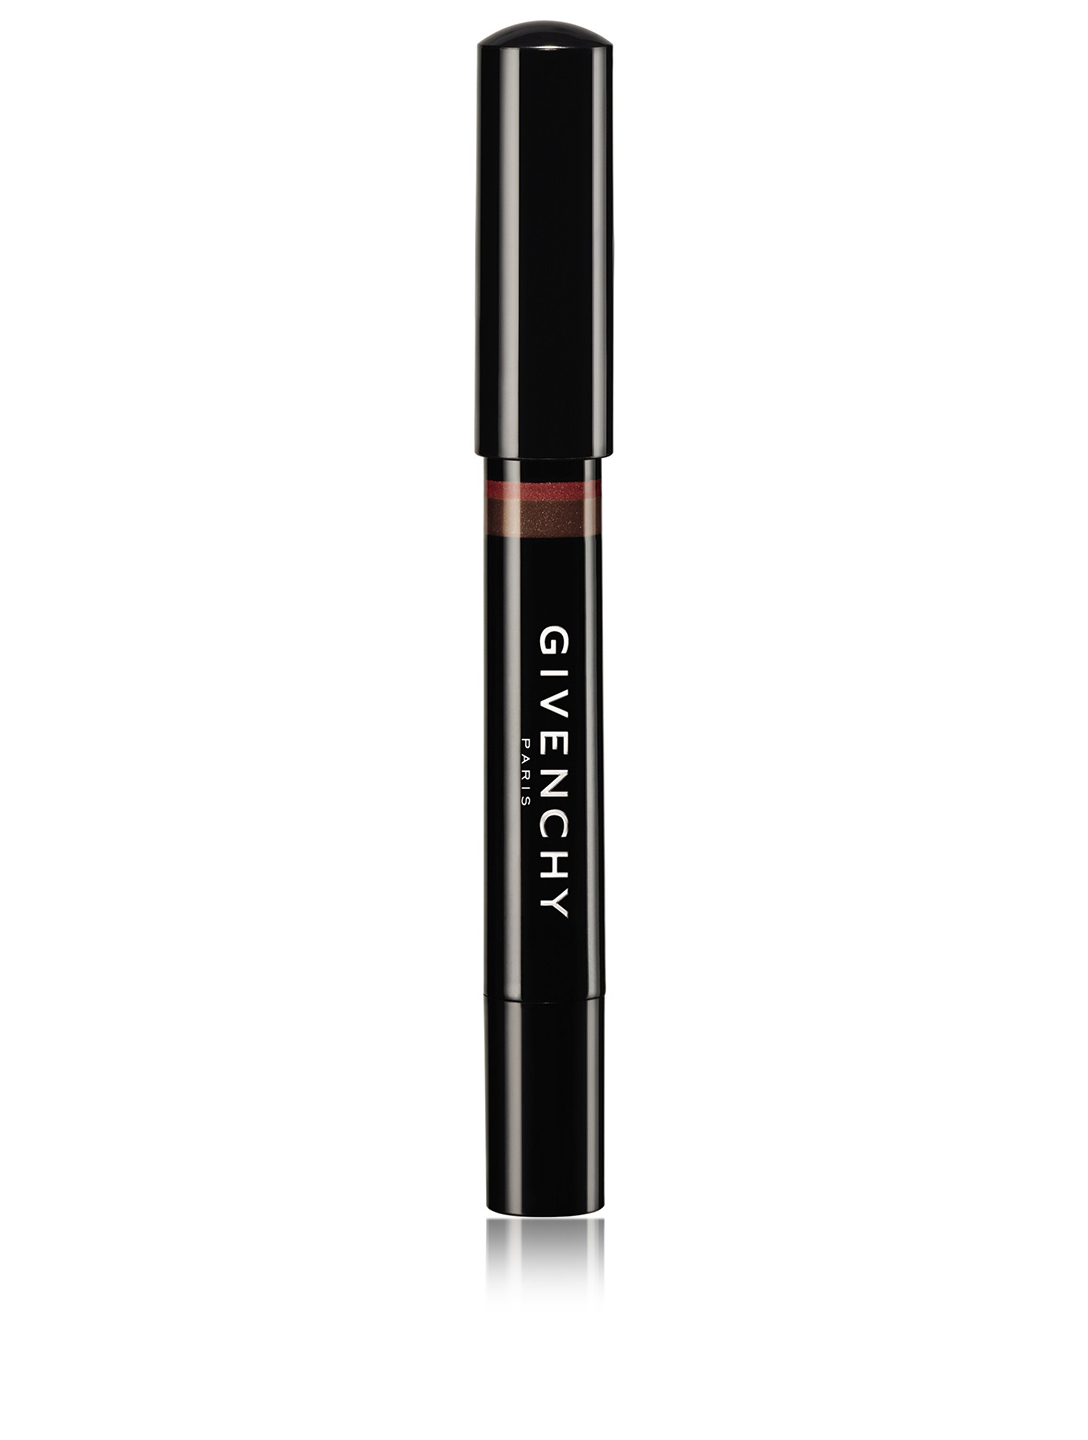 GIVENCHY Dual Liner Two-Tone Eyeshadow & Liner - Holiday Limited Edition Beauty Multi